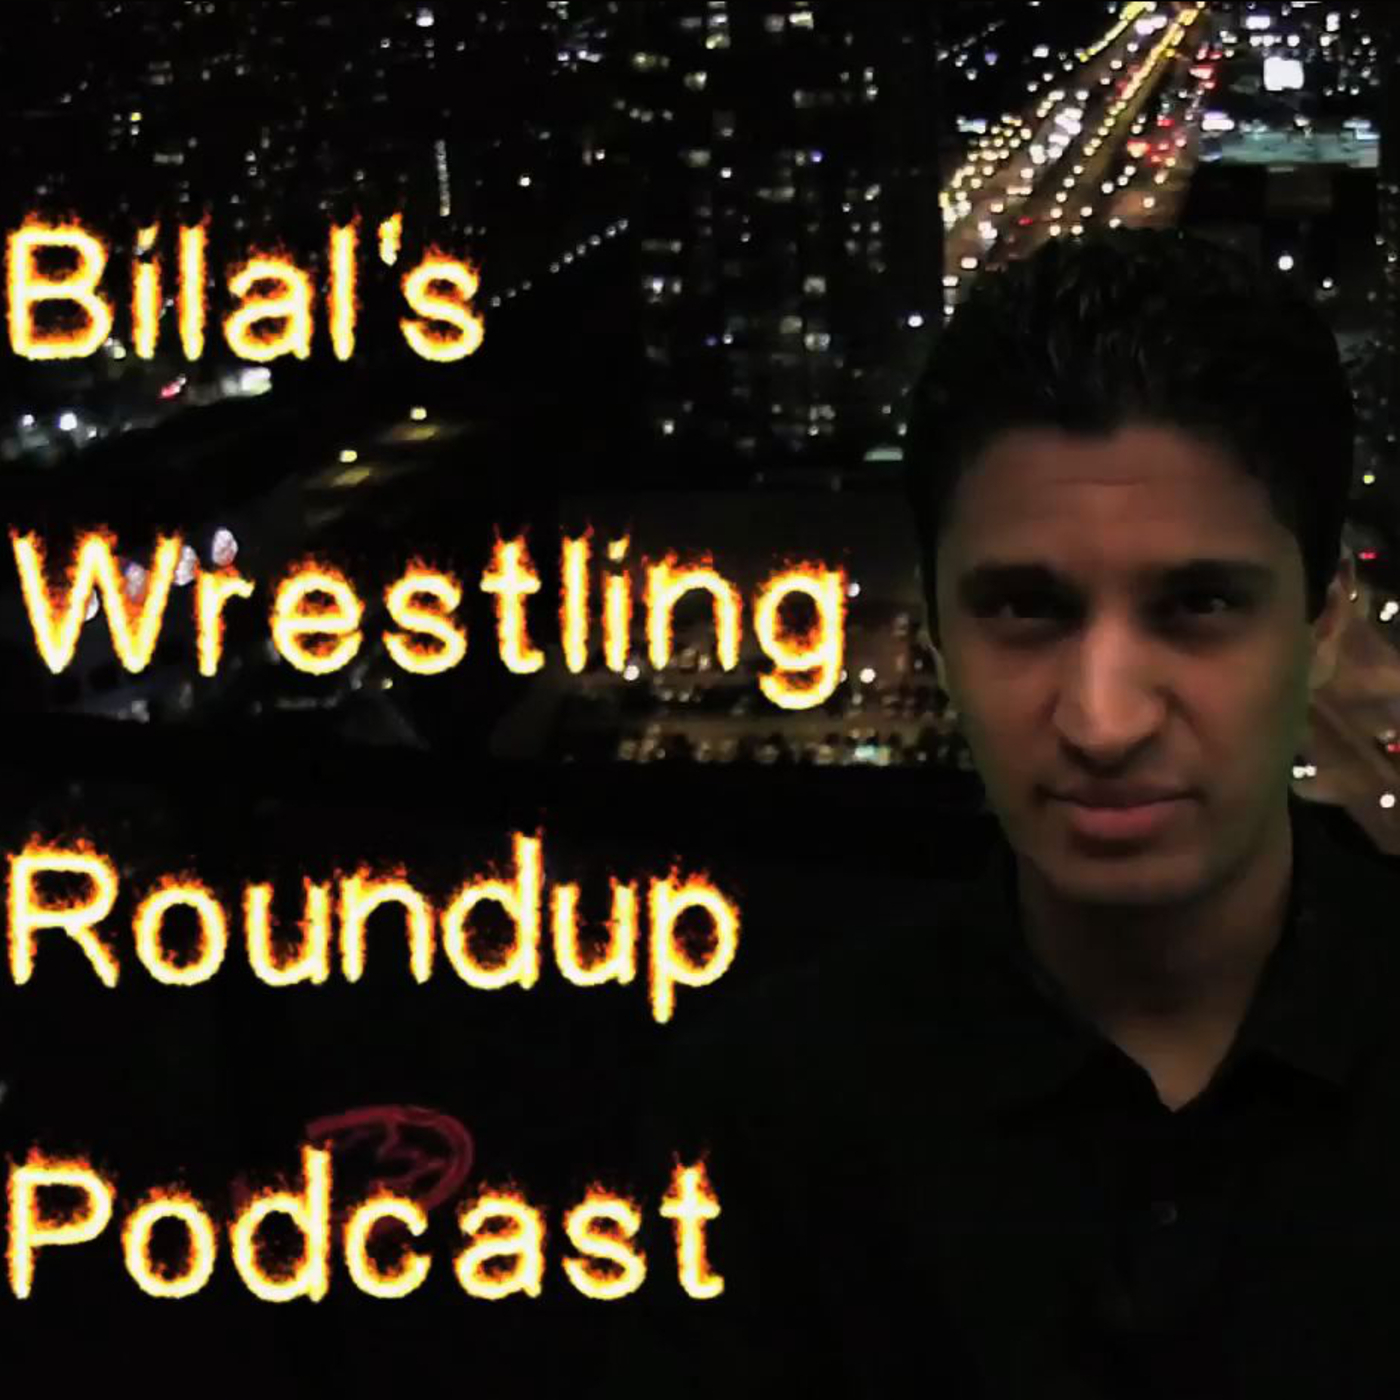 Bilal's Wrestling Roundup Podcast